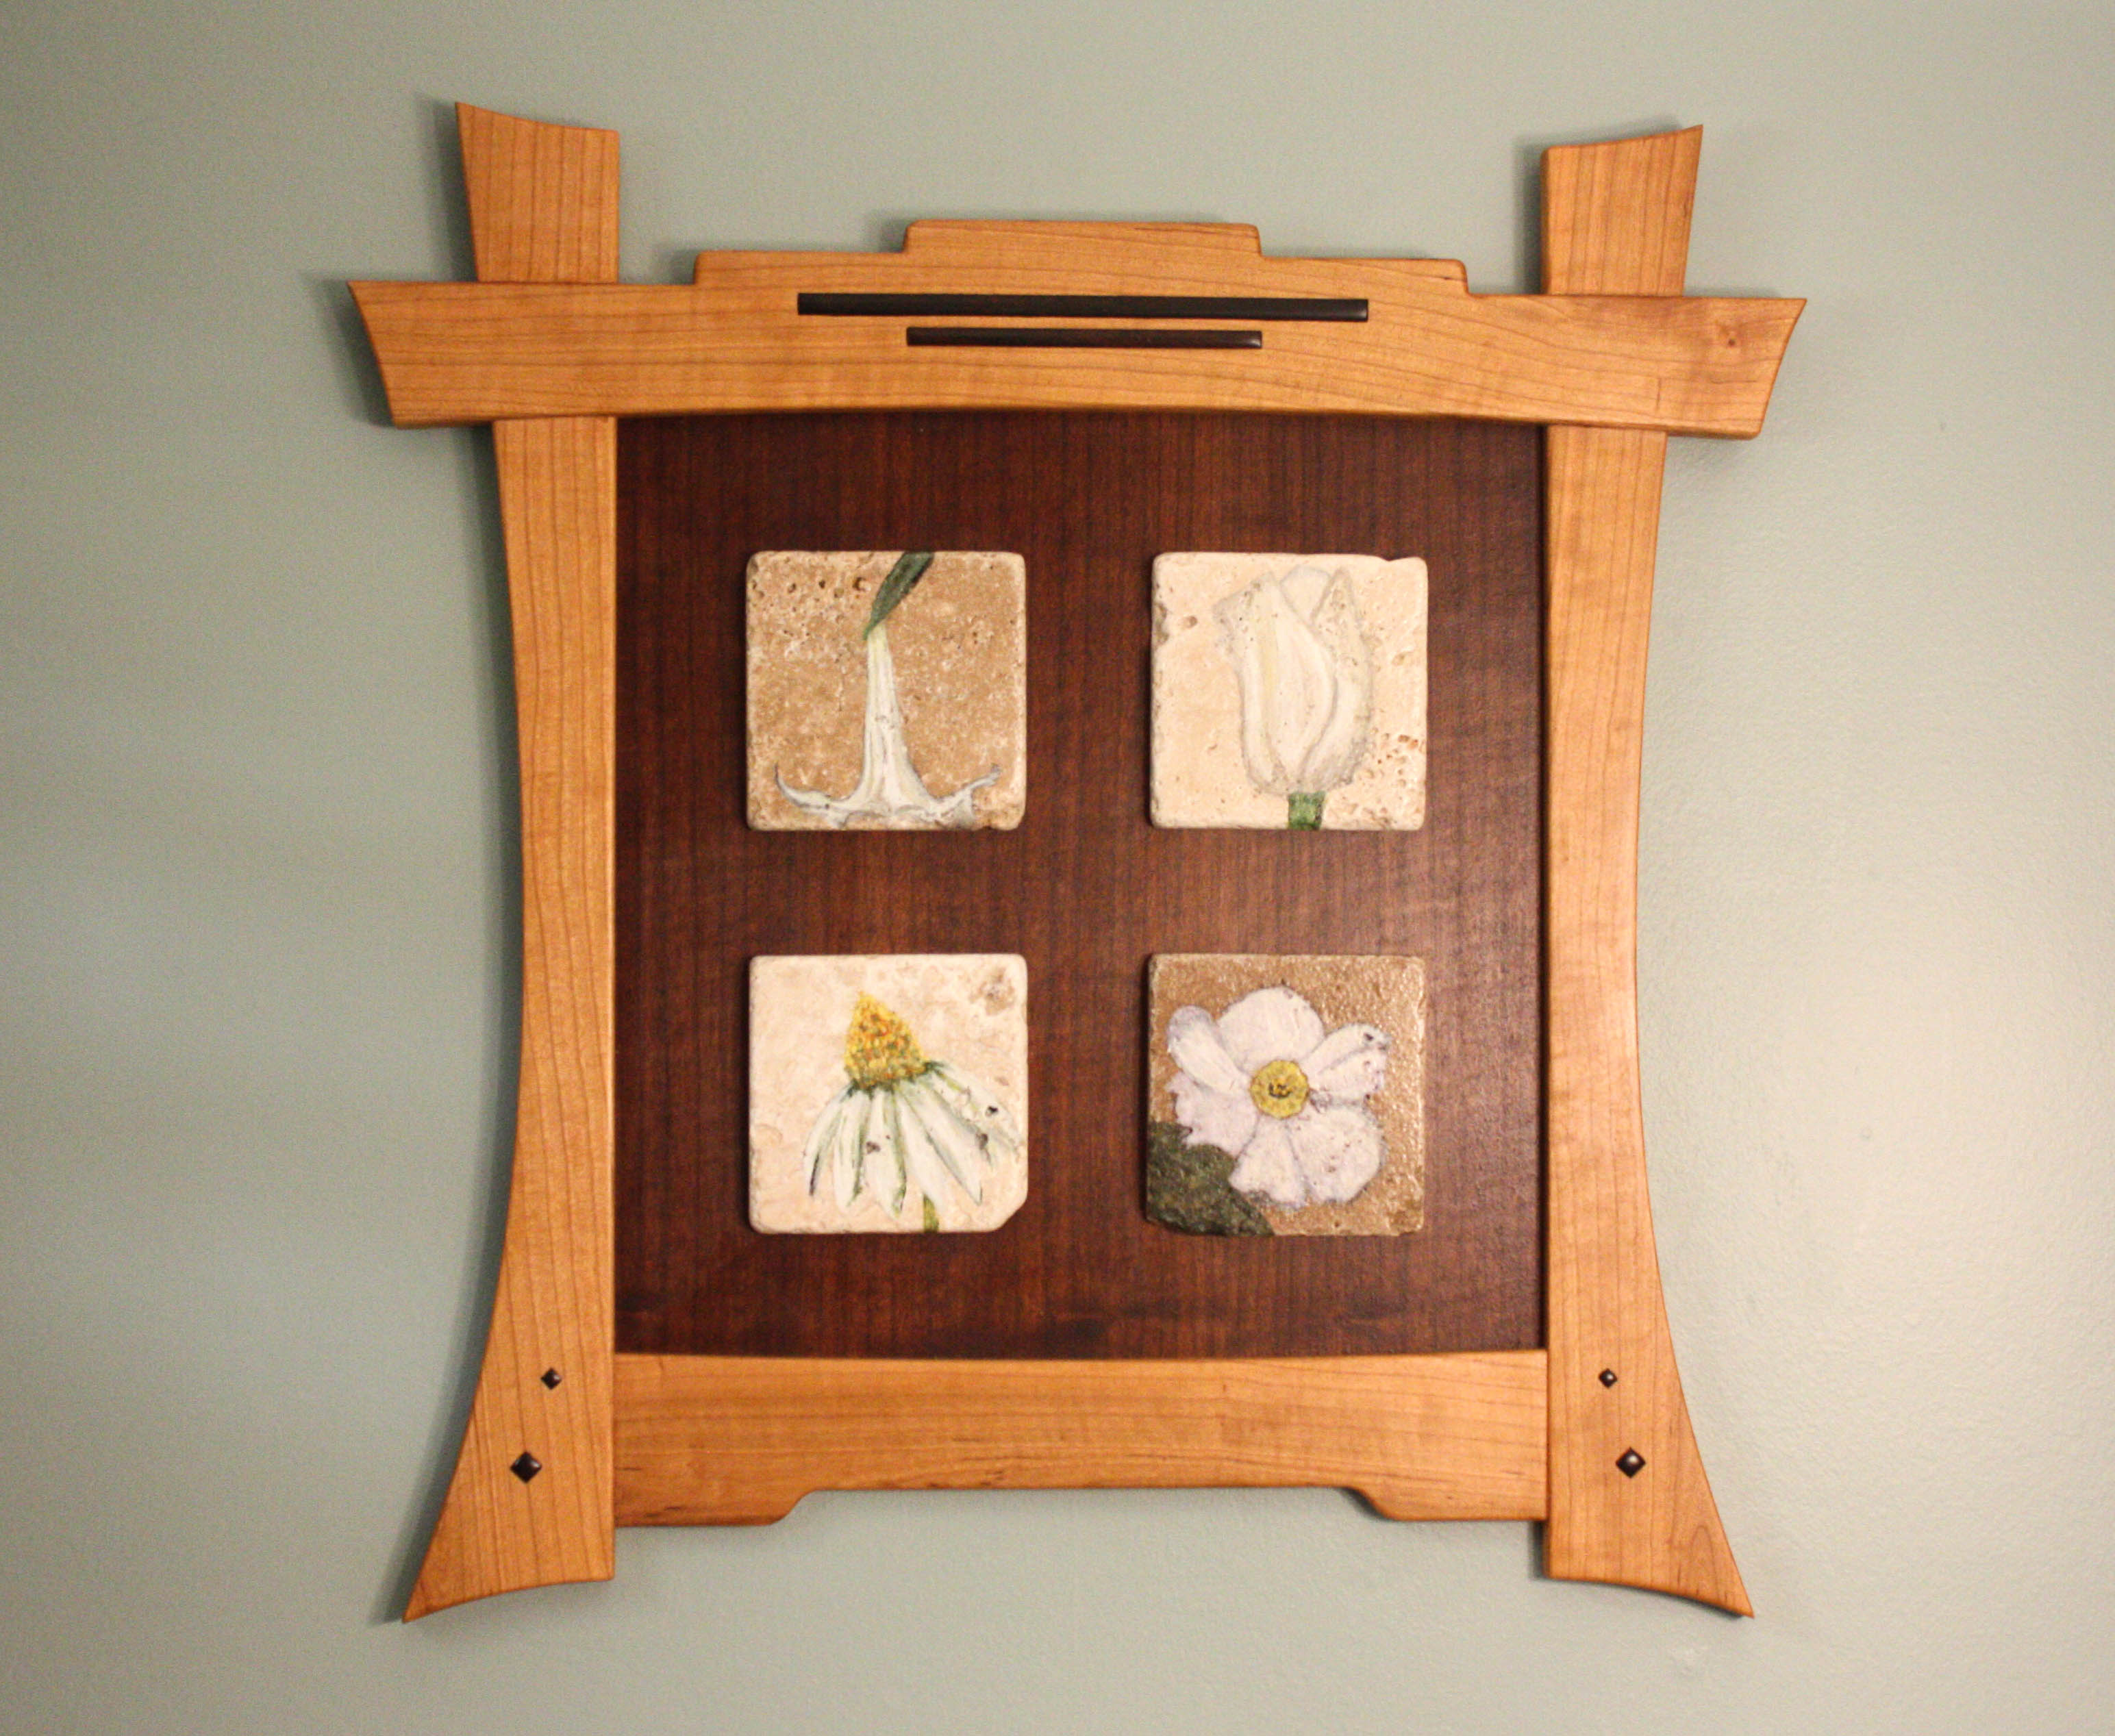 Simple frames for the home. | Digital Woodworker